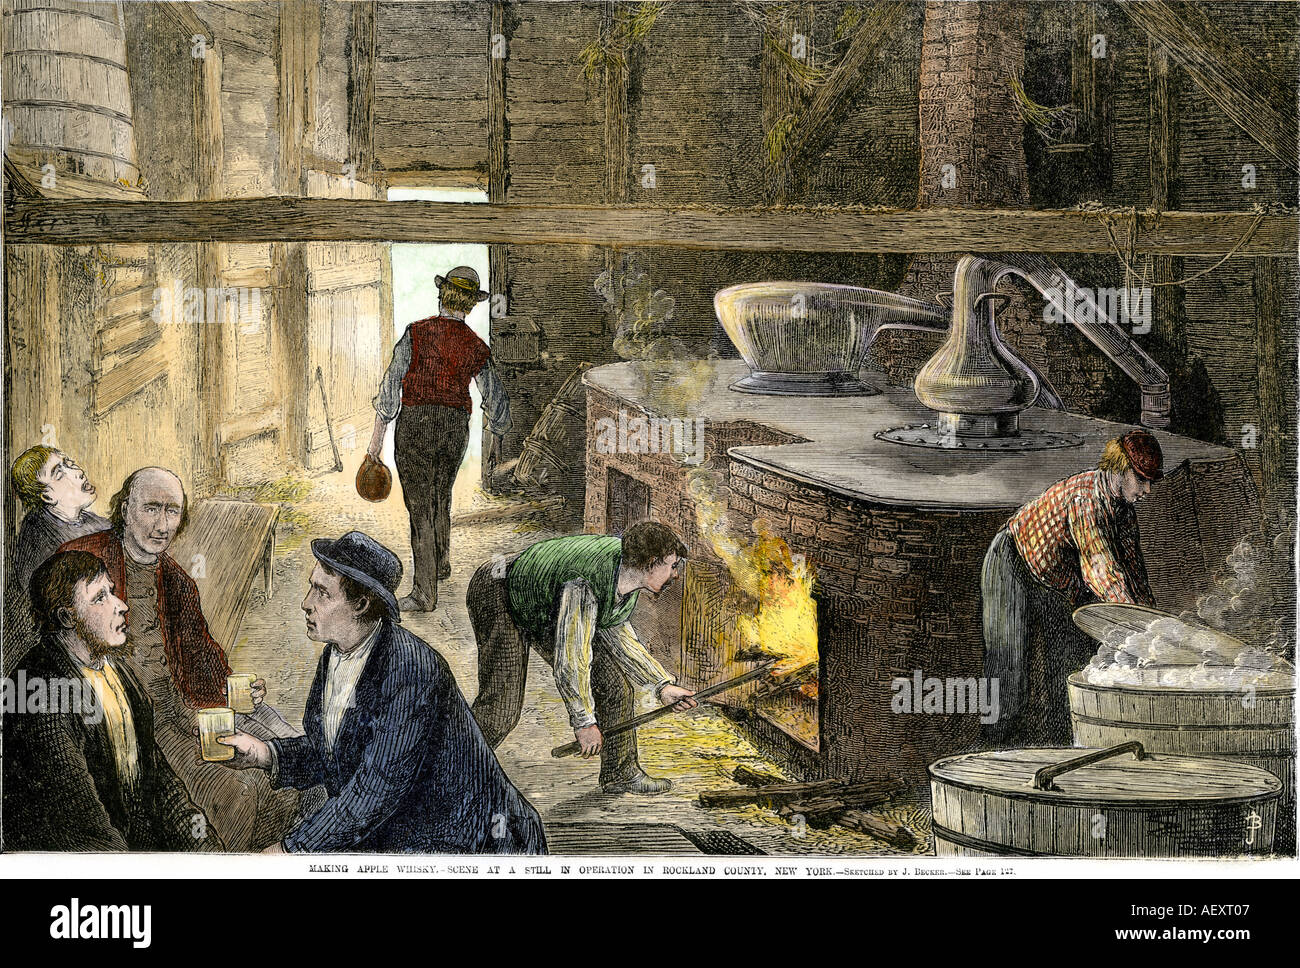 Making apple whiskey at a still in Rockland County New York 1870. Hand-colored woodcut - Stock Image